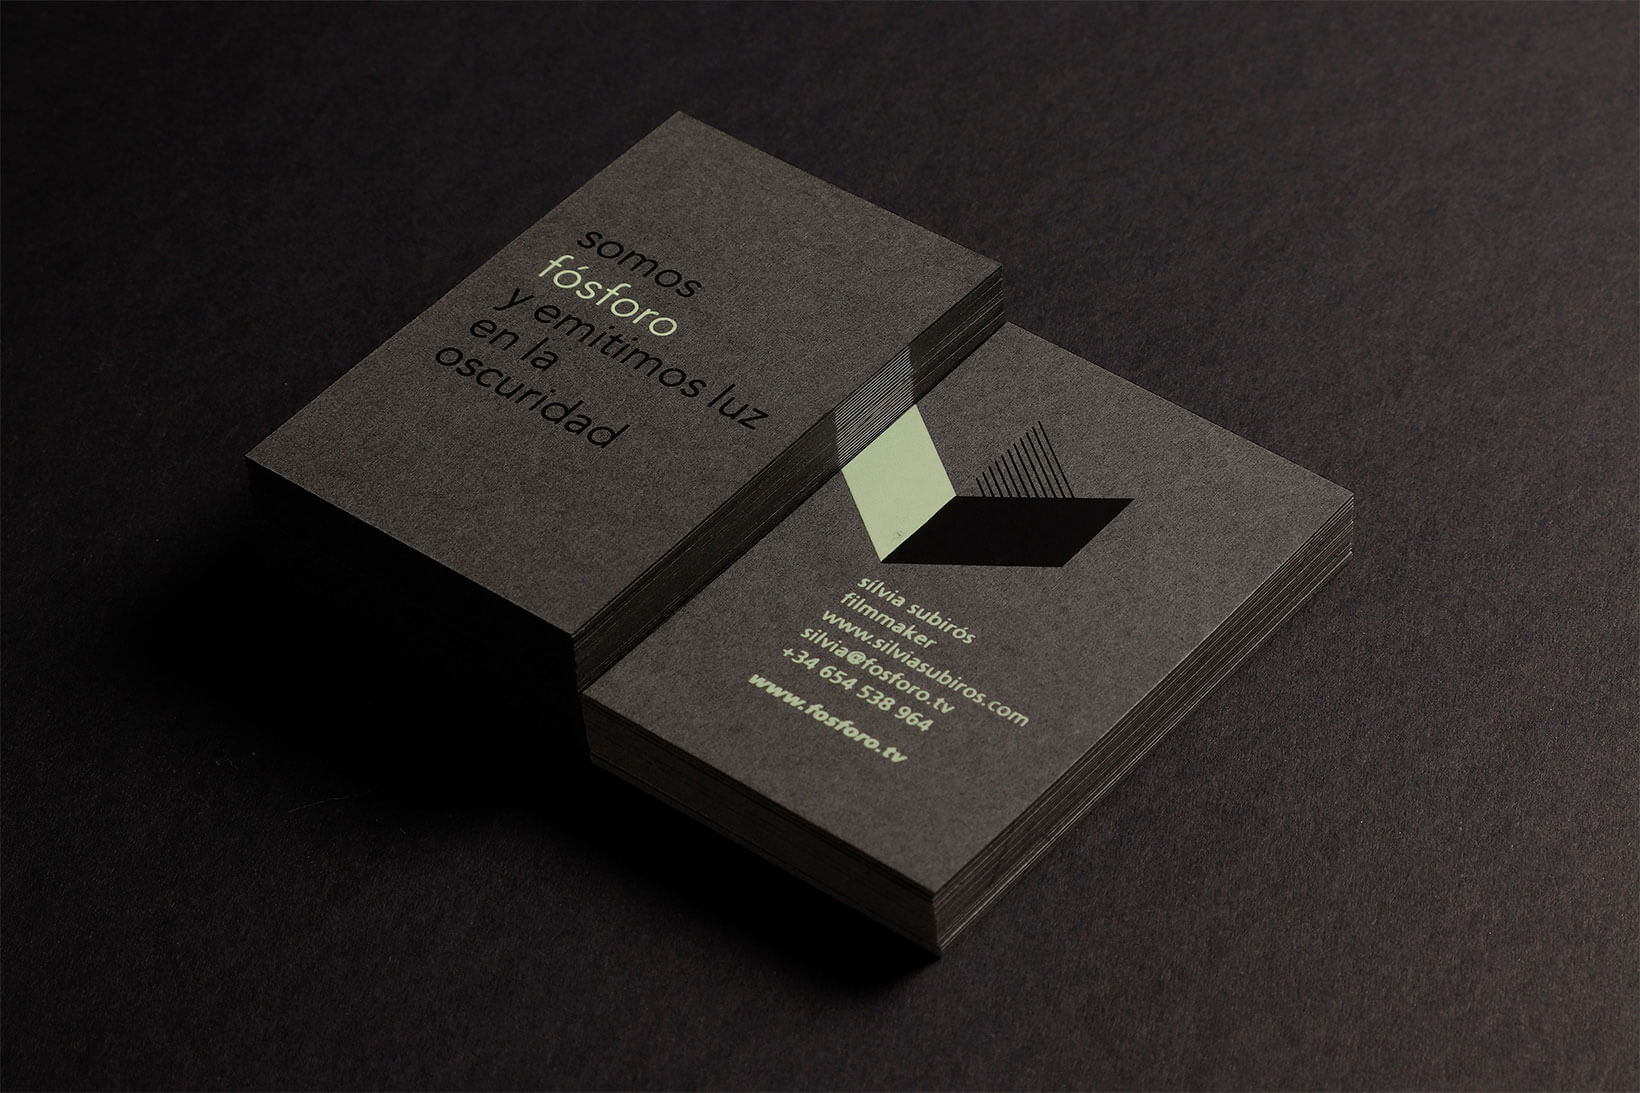 Fósforo film production branding logo design typography graphic design art direction business cards Vibranding